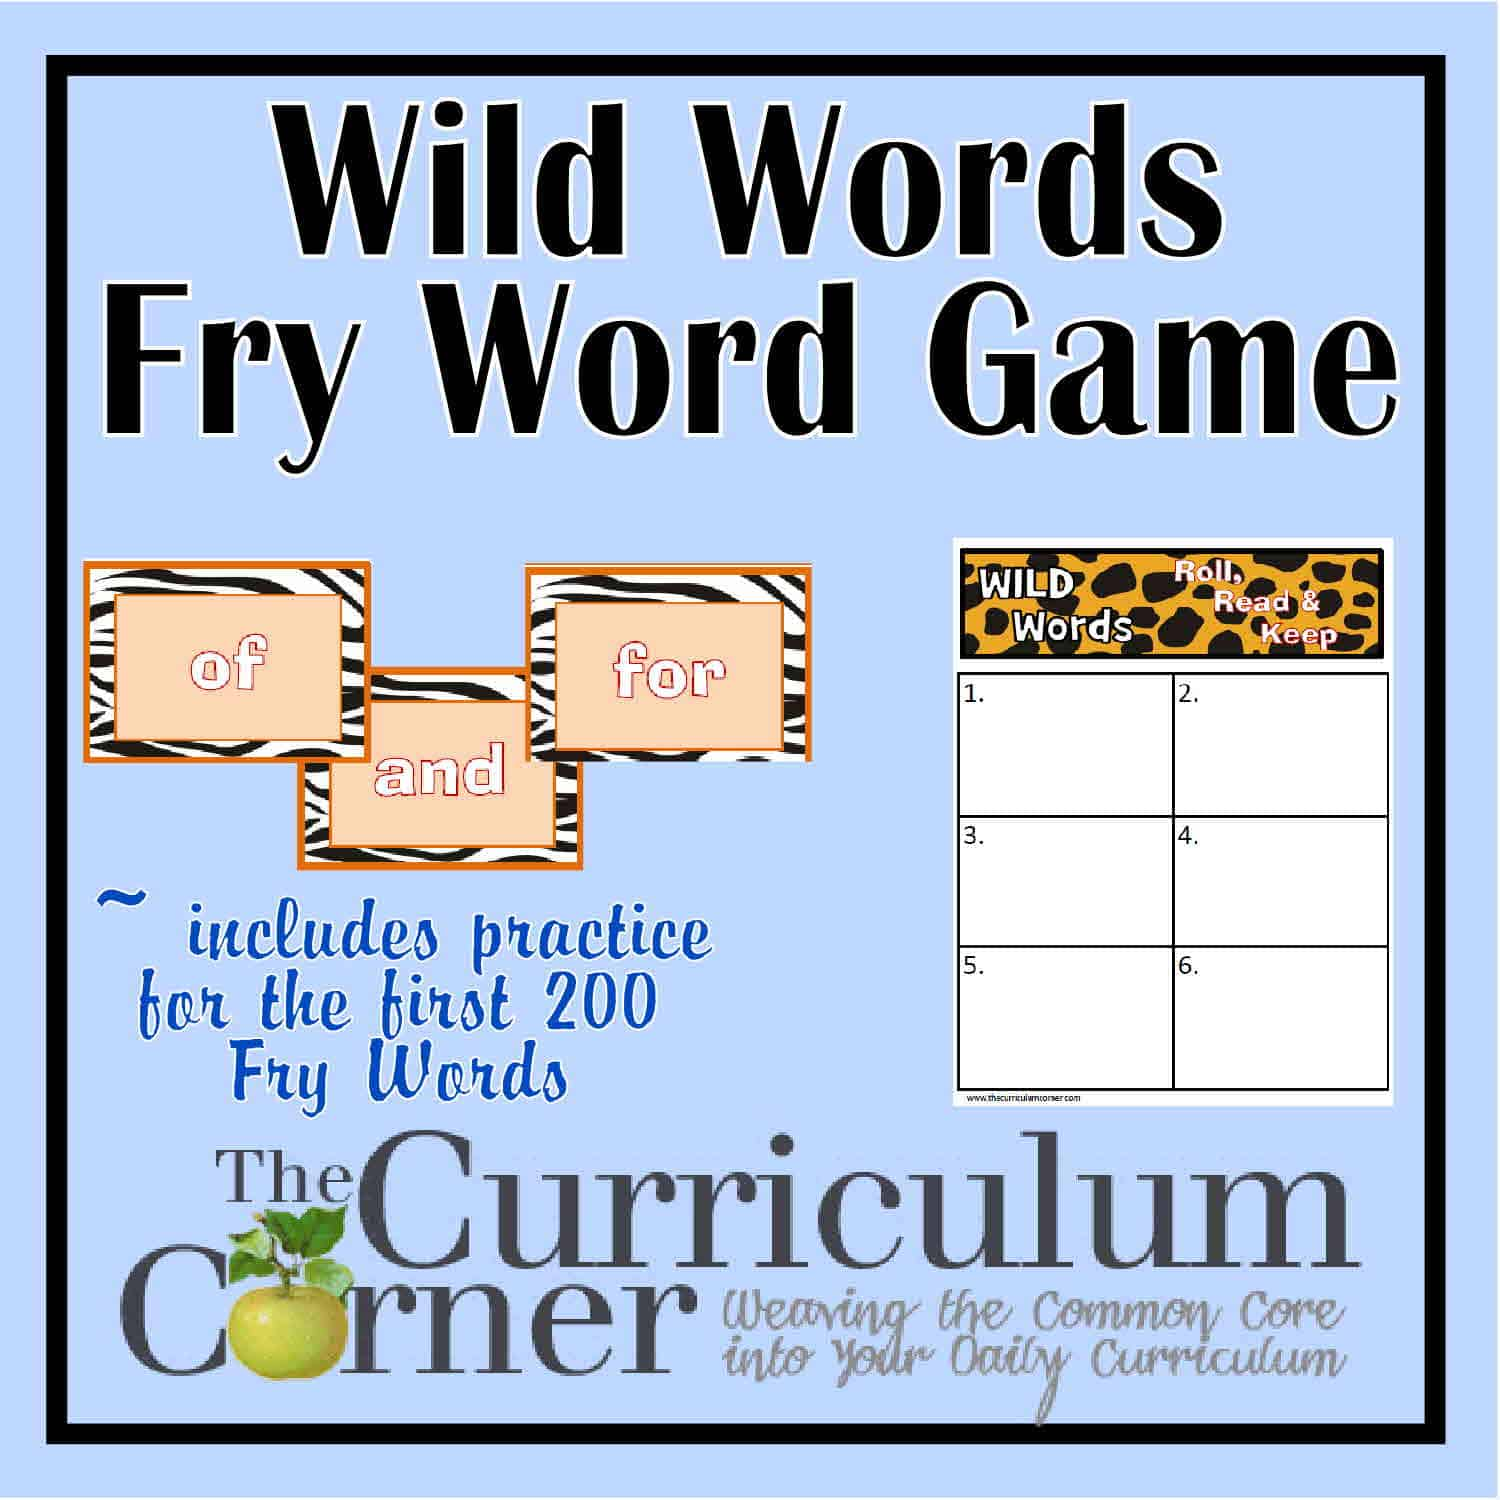 Wild Roll, Read & Keep Fry Word Game